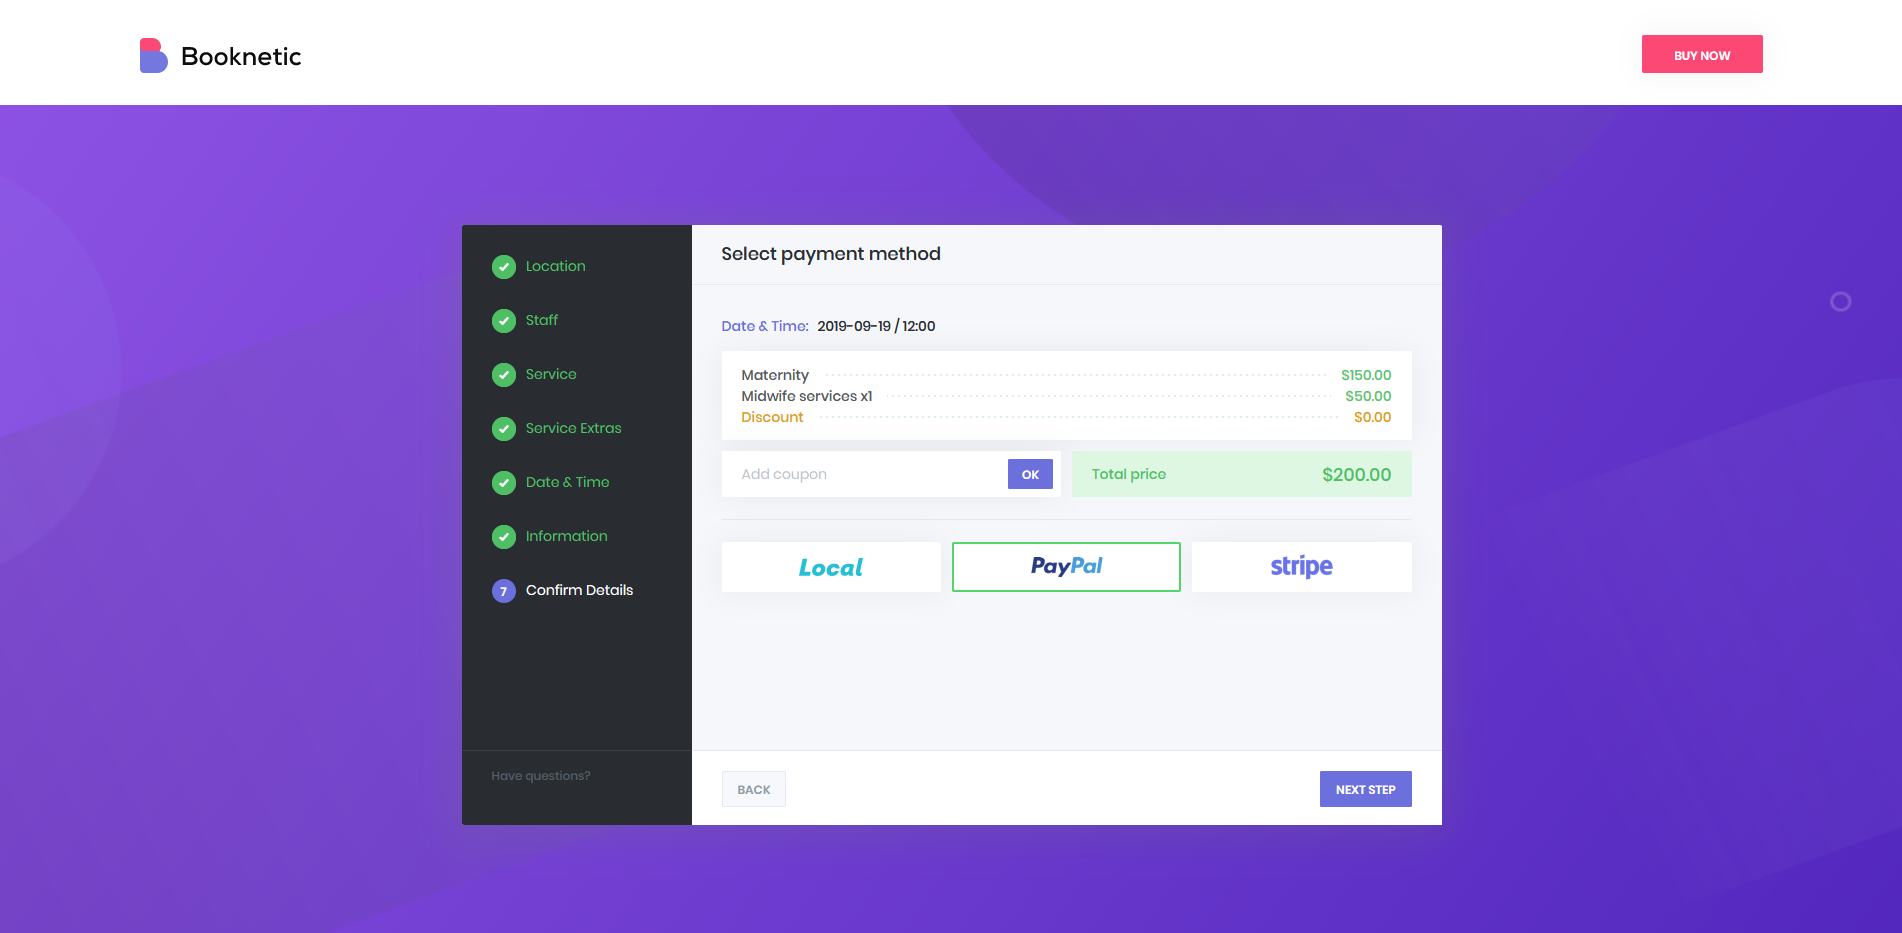 Booknetic - PayPal, Stripe, Local payment methods